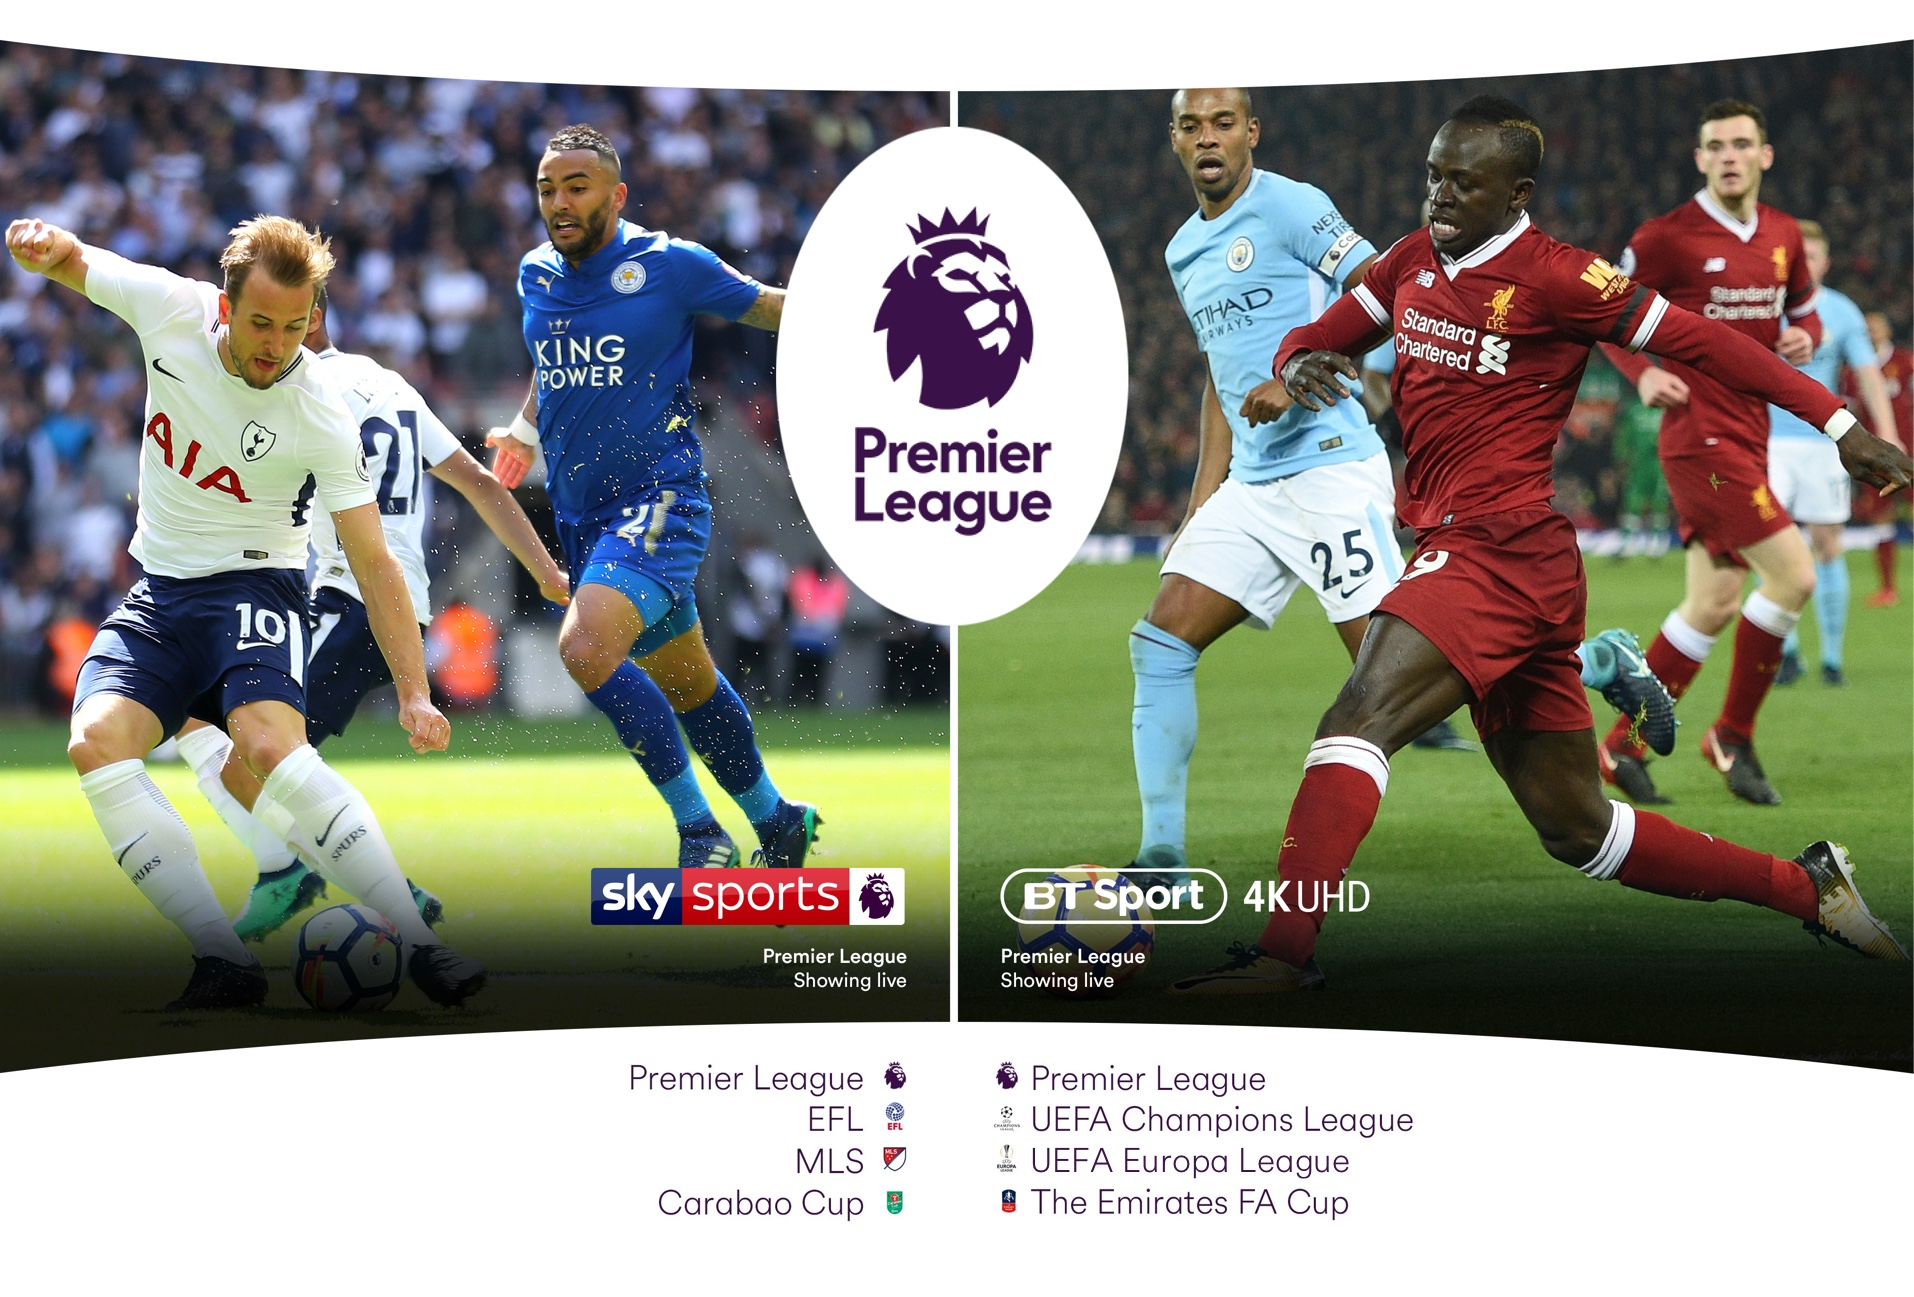 live football fixtures on sky sports and bt sports virgin media